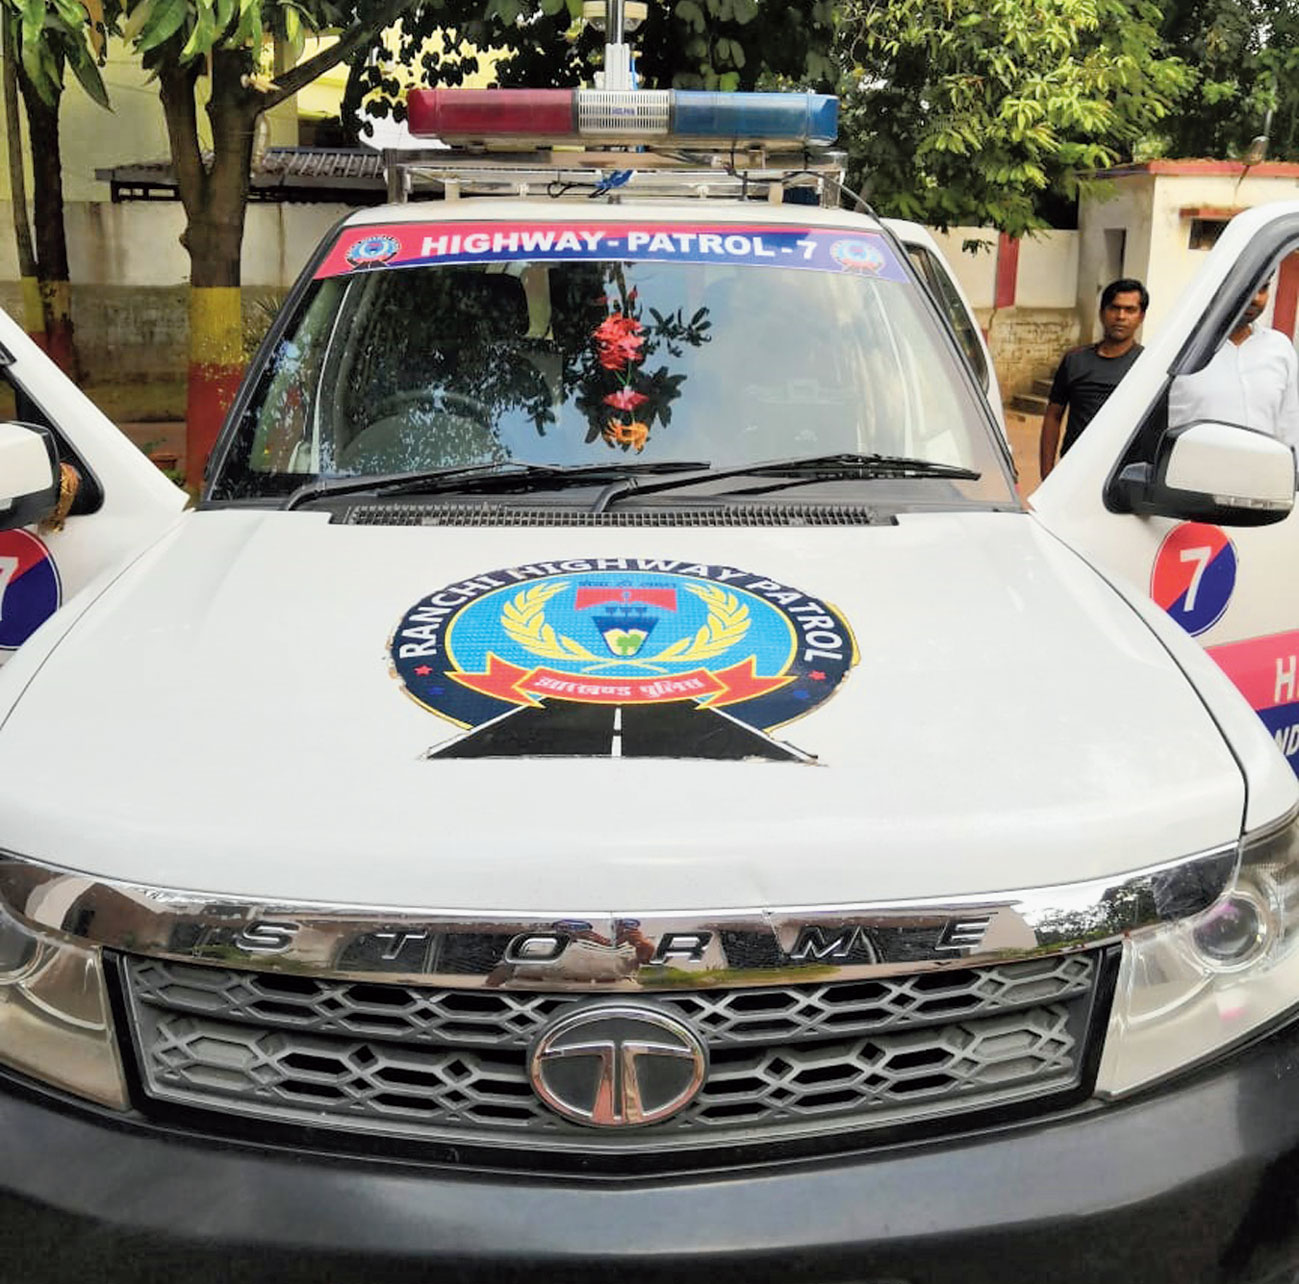 A PCR van with surveillance camera on top in Ranchi on Thursday.